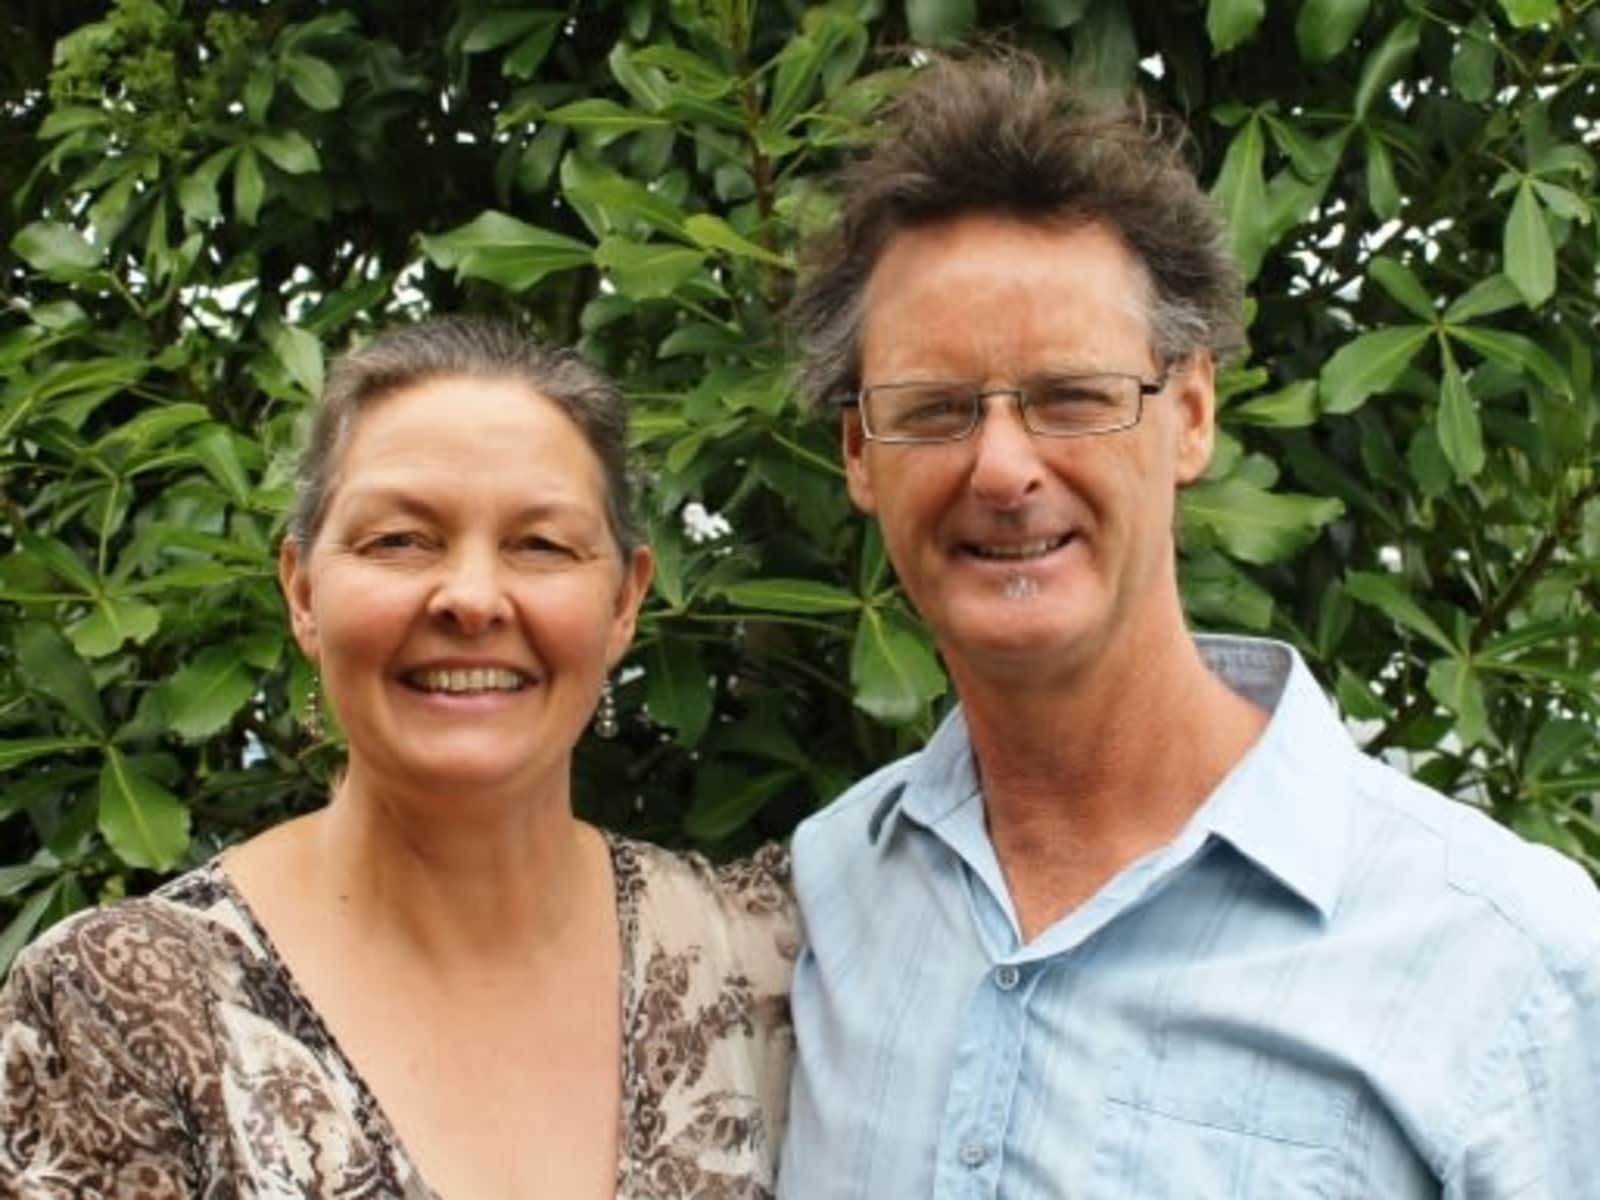 Walter & Tracey from Tauranga, New Zealand